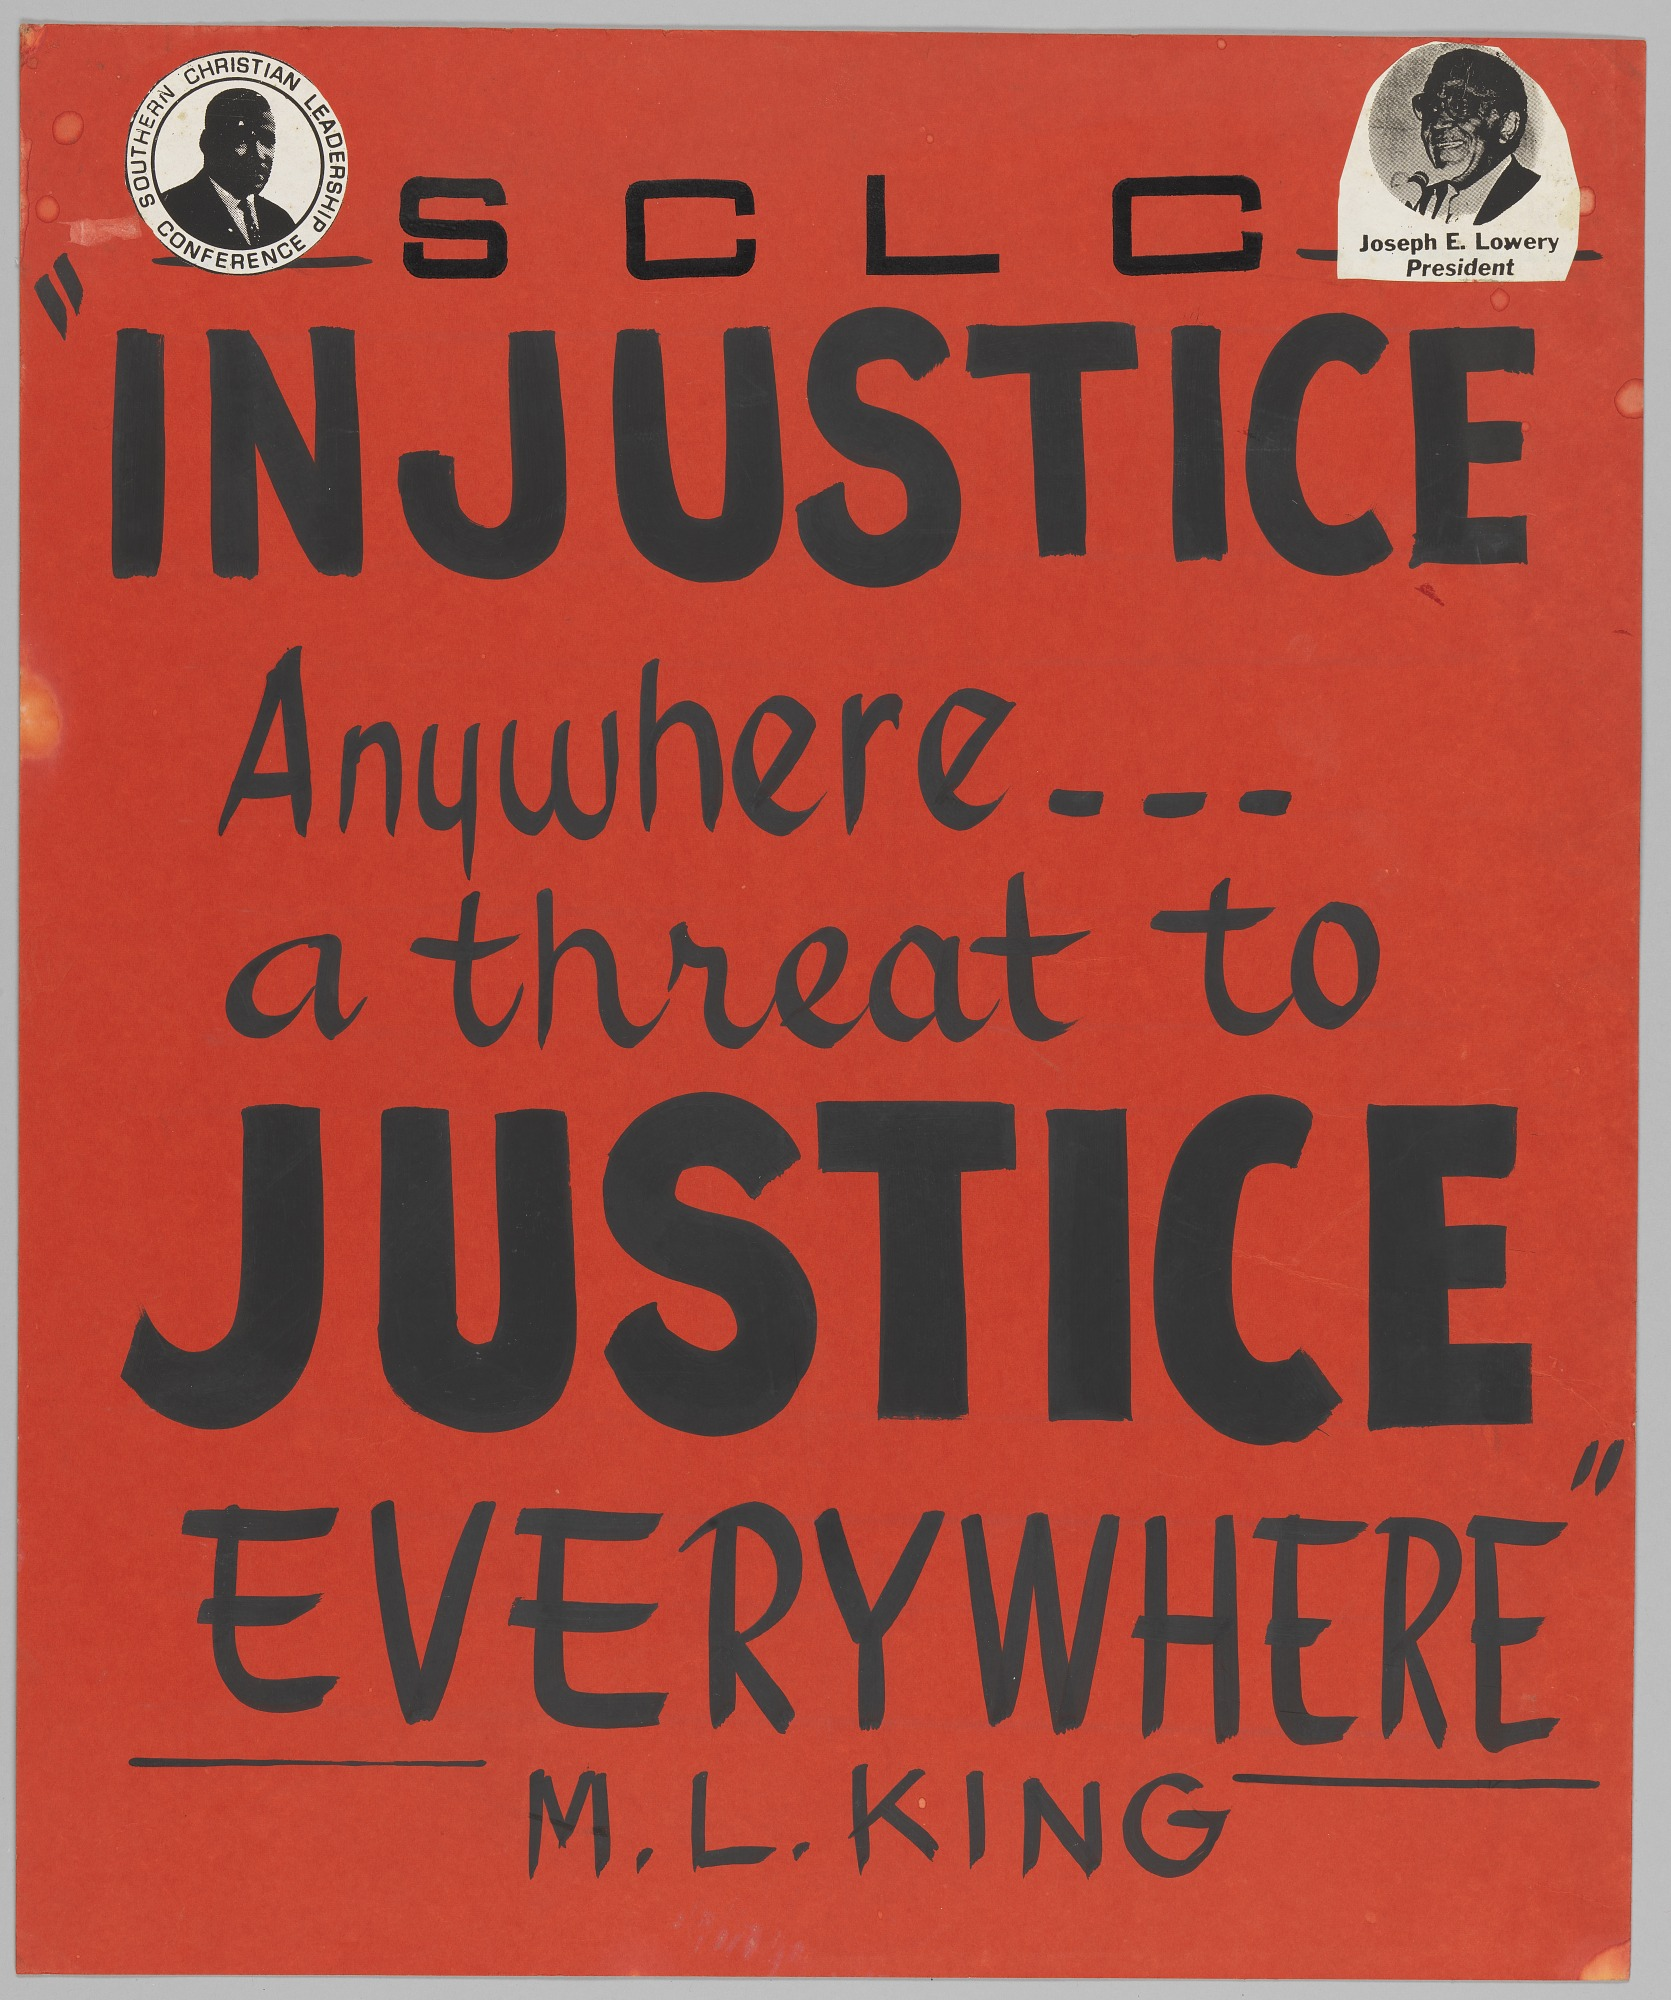 images for Handmade SCLC poster supporting justice